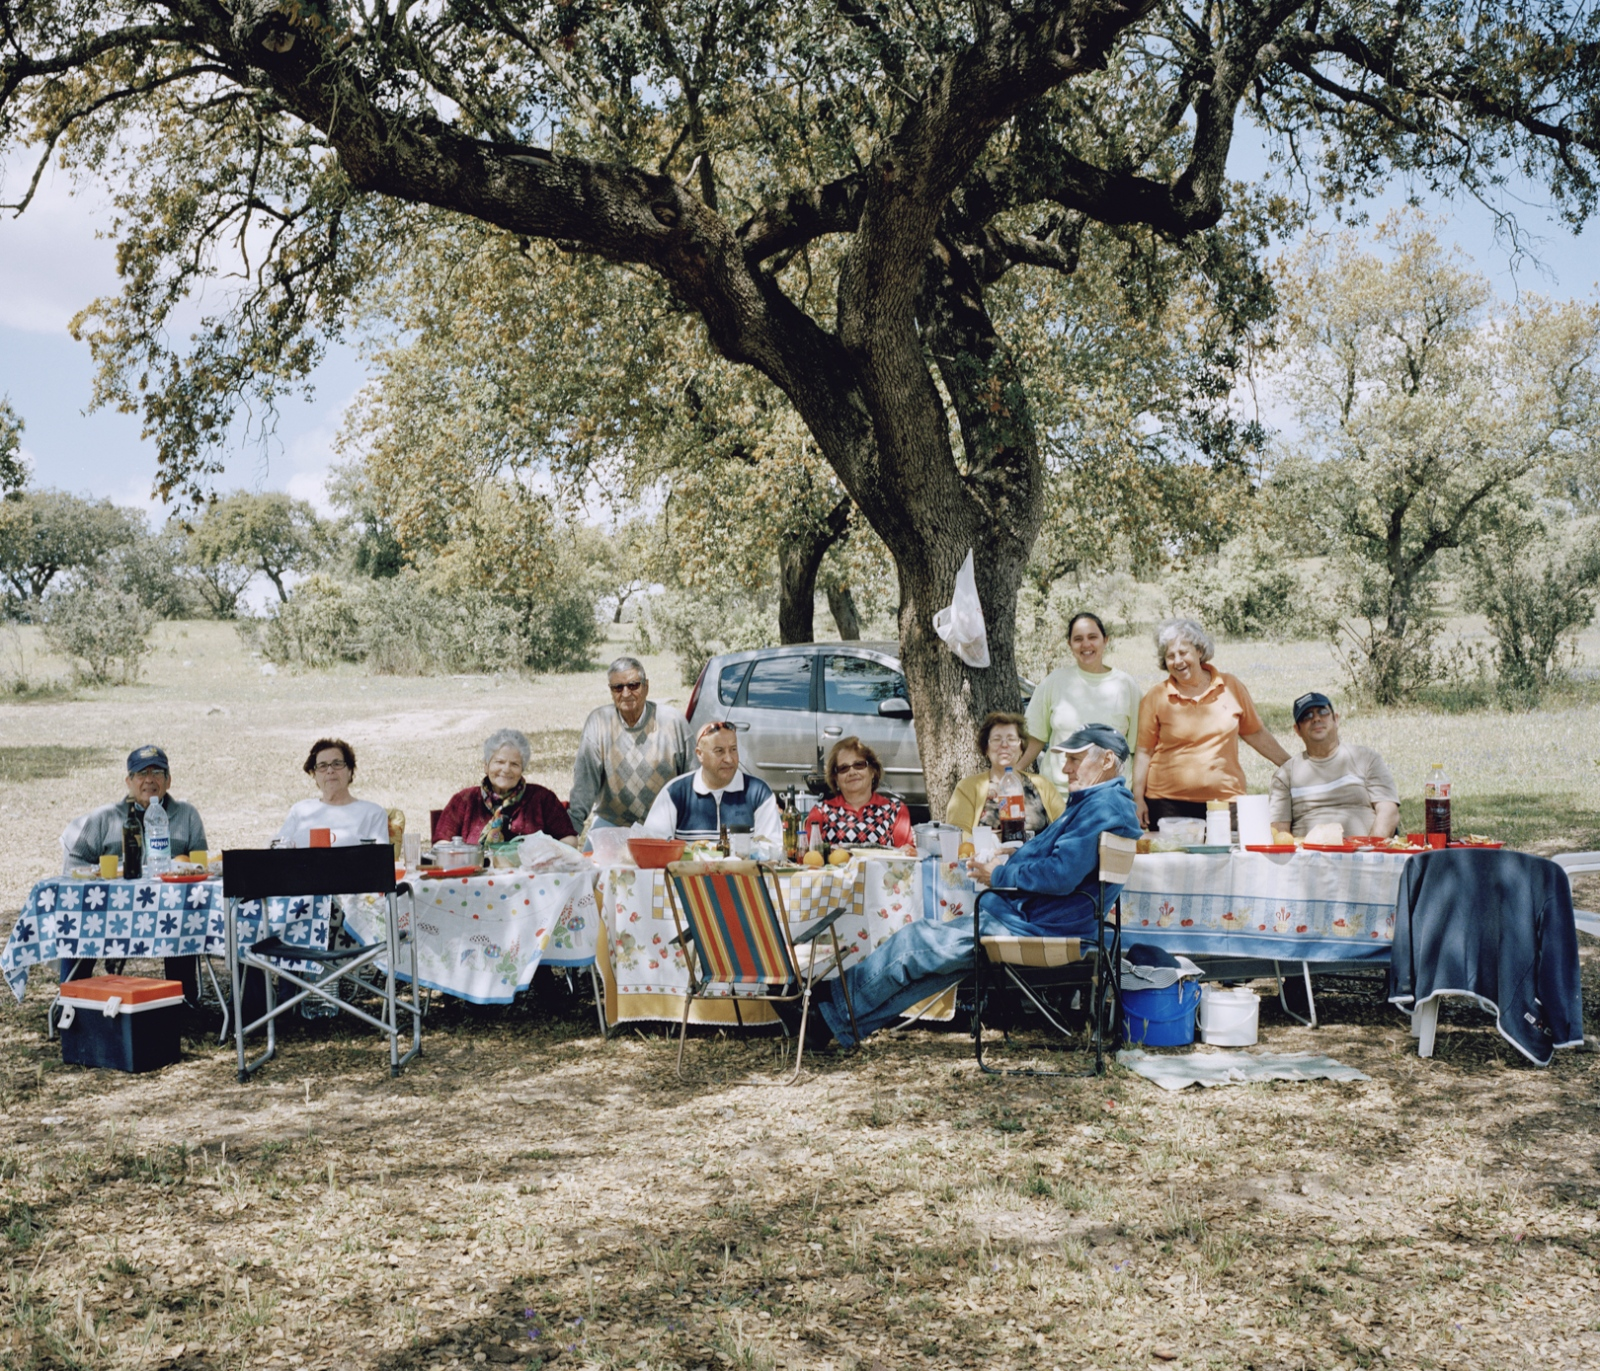 Portugal, Elvas. A group of neighbors have a sunday picnic near the river that divides Portugal and Spain.